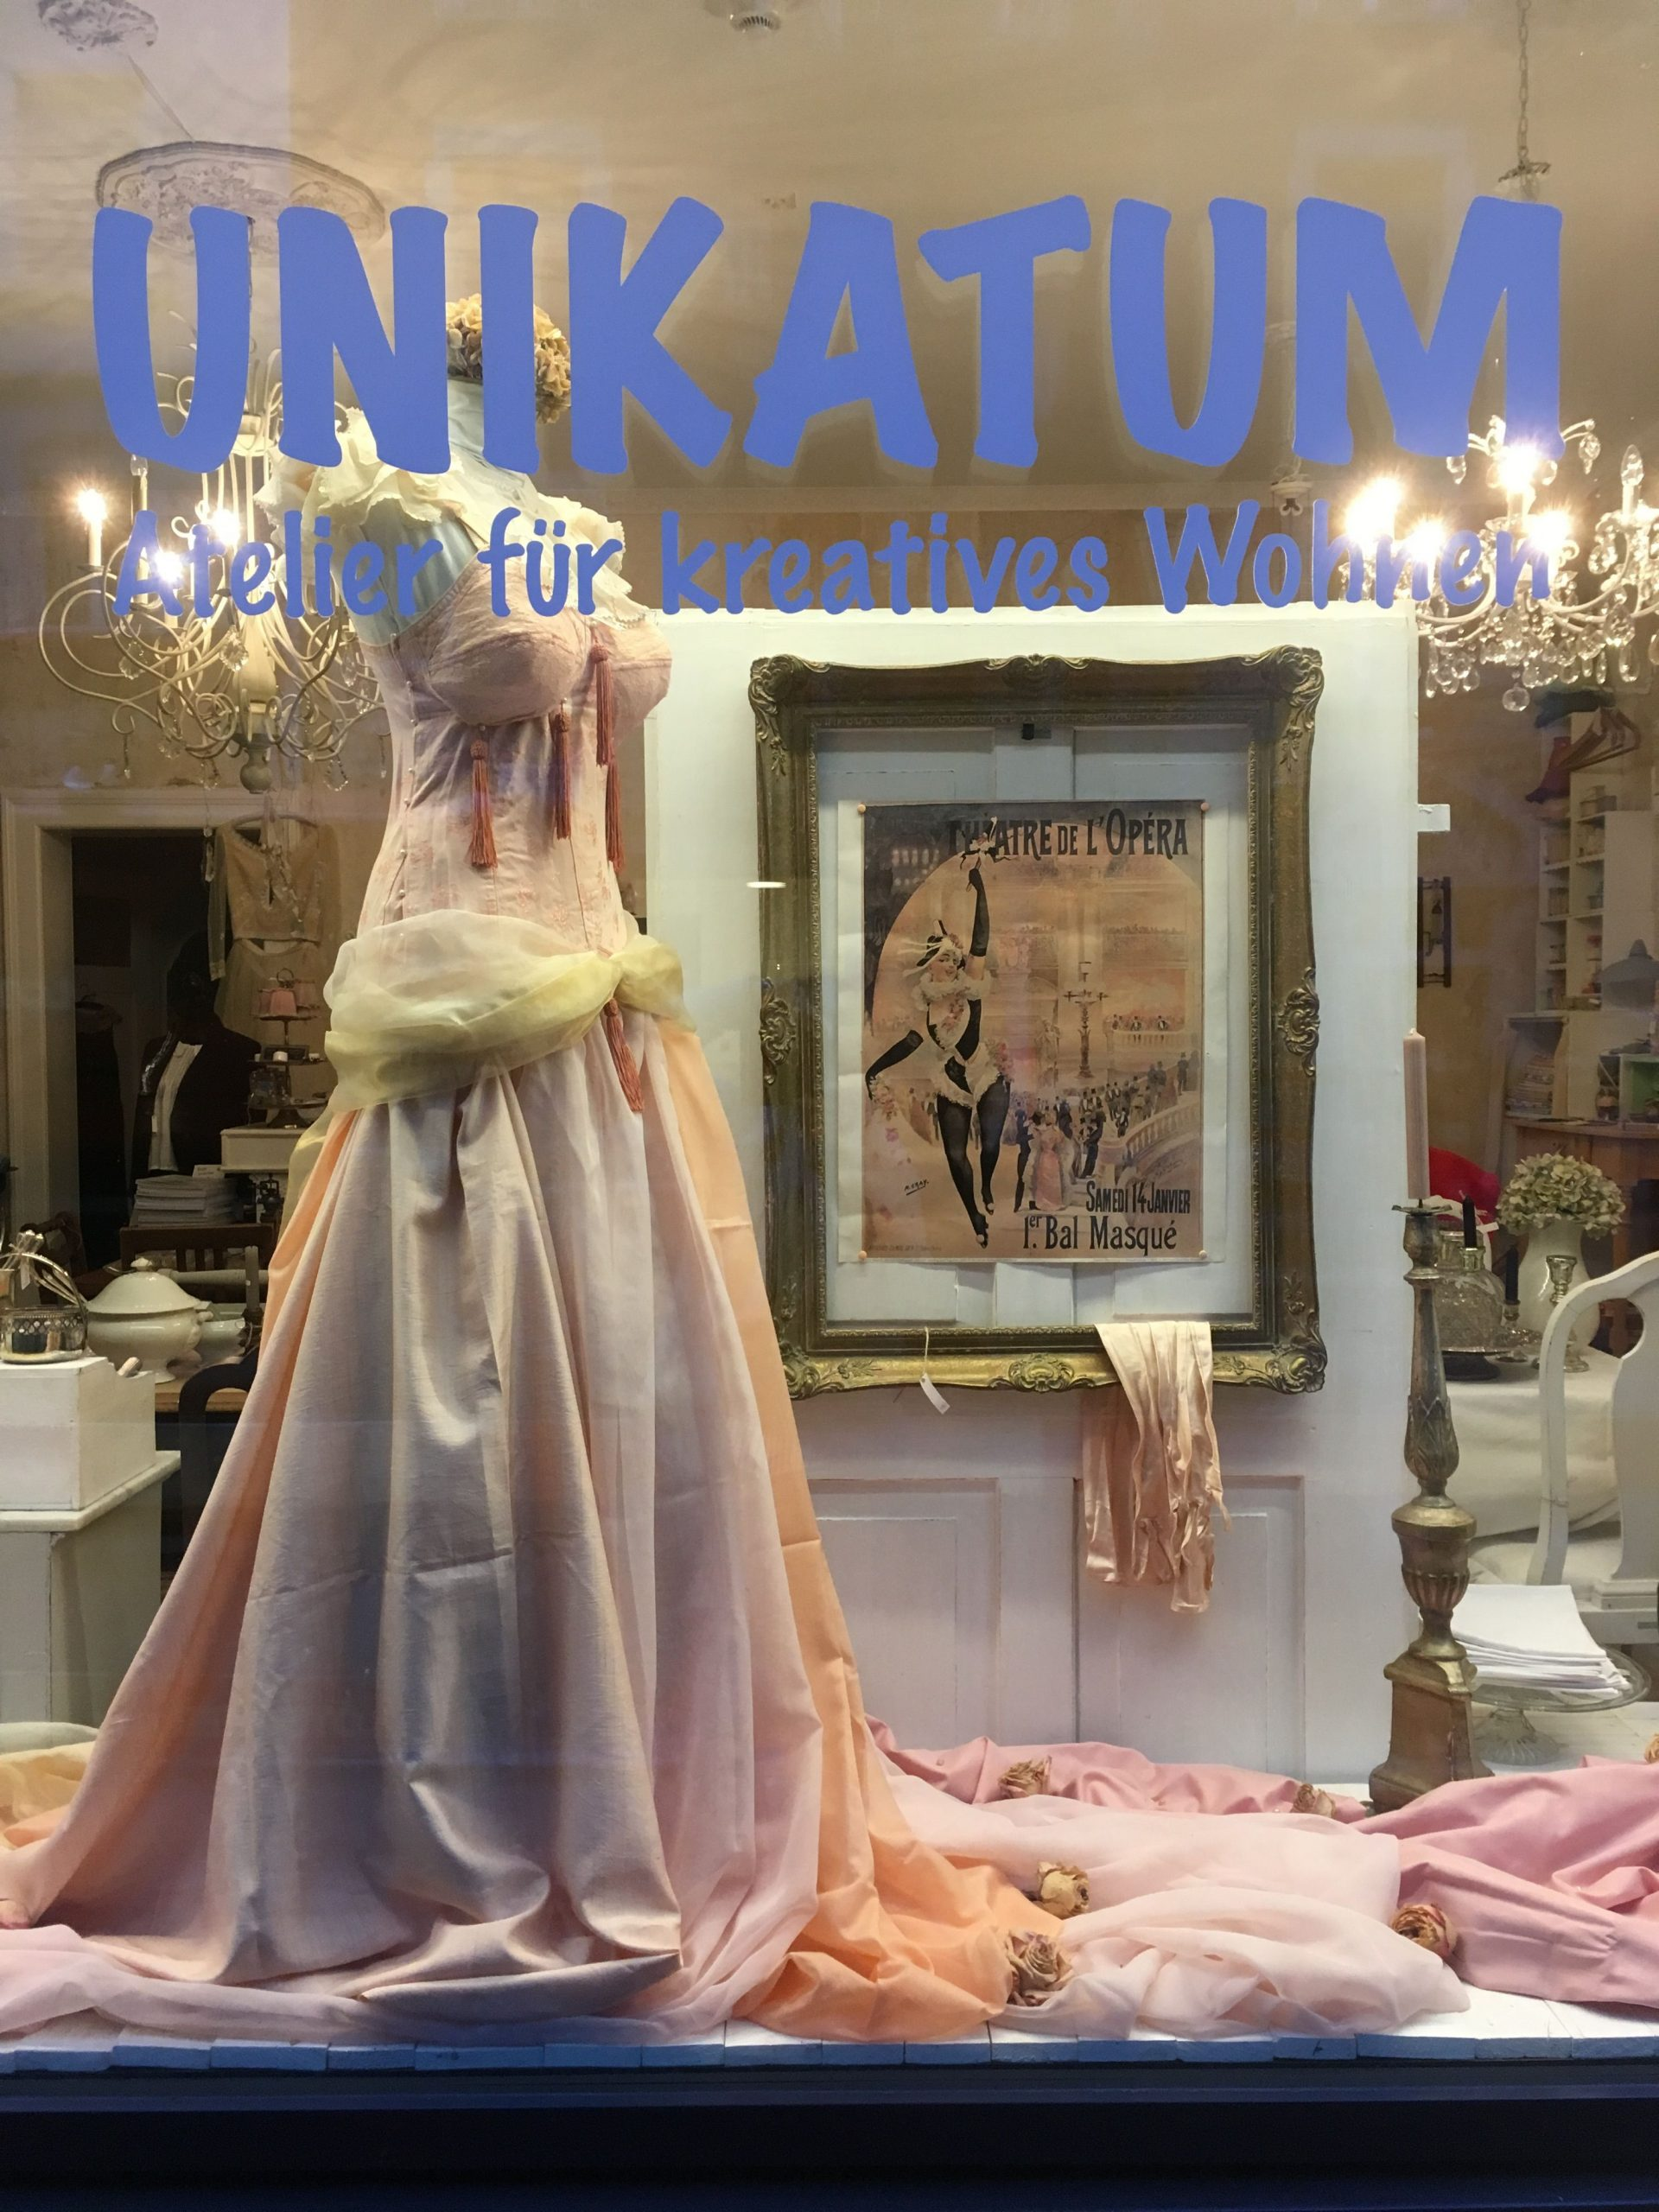 Unikatum Vintage Laden In Luzern: Schaufenster Februar 2018